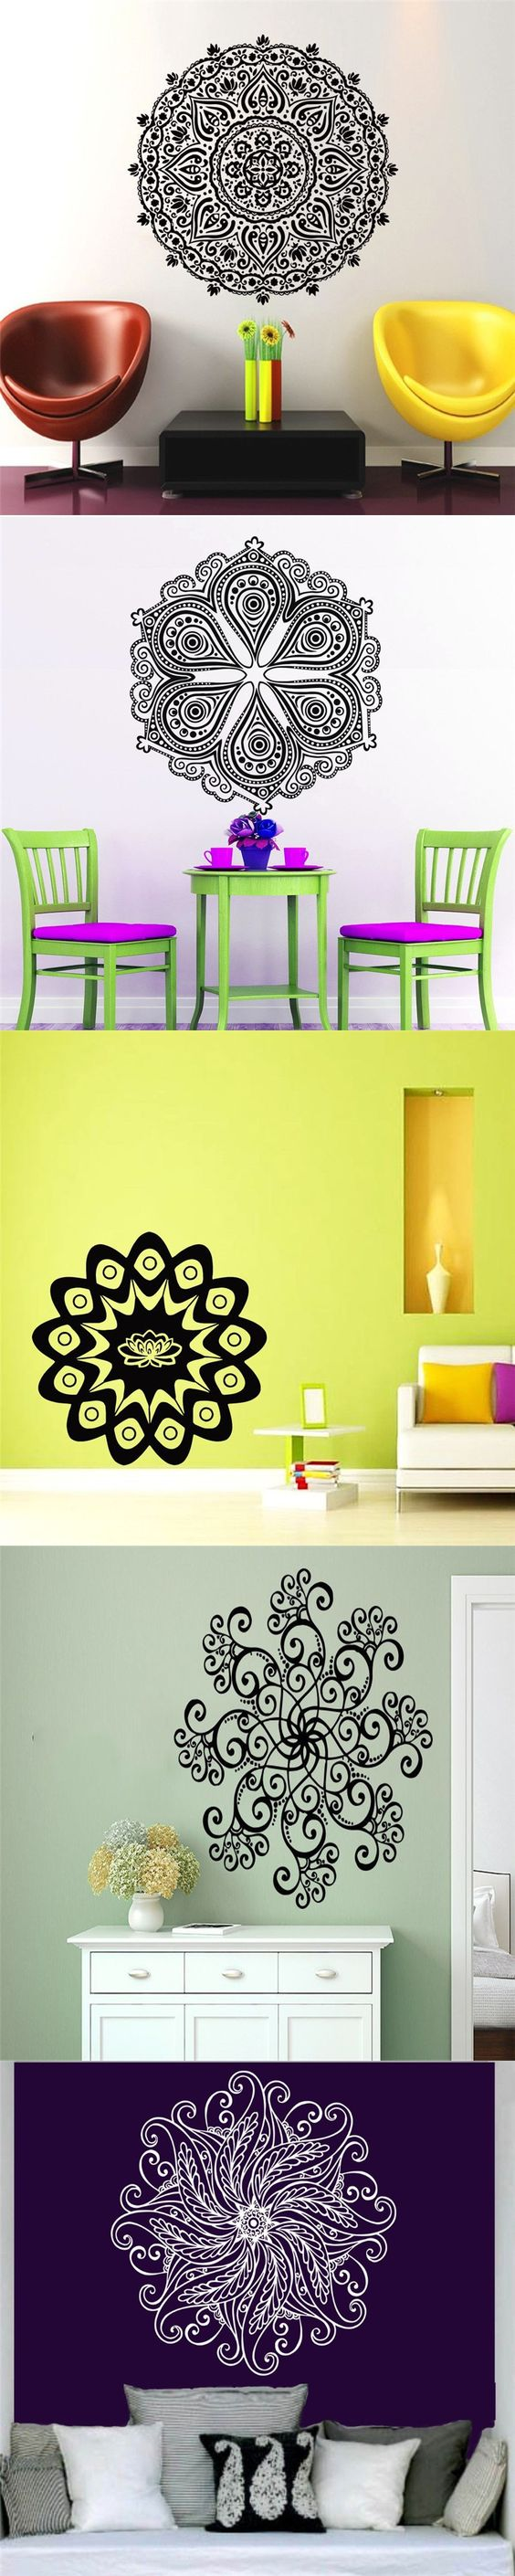 Famous Giant Scissors Wall Art Adornment - Wall Art Collections ...